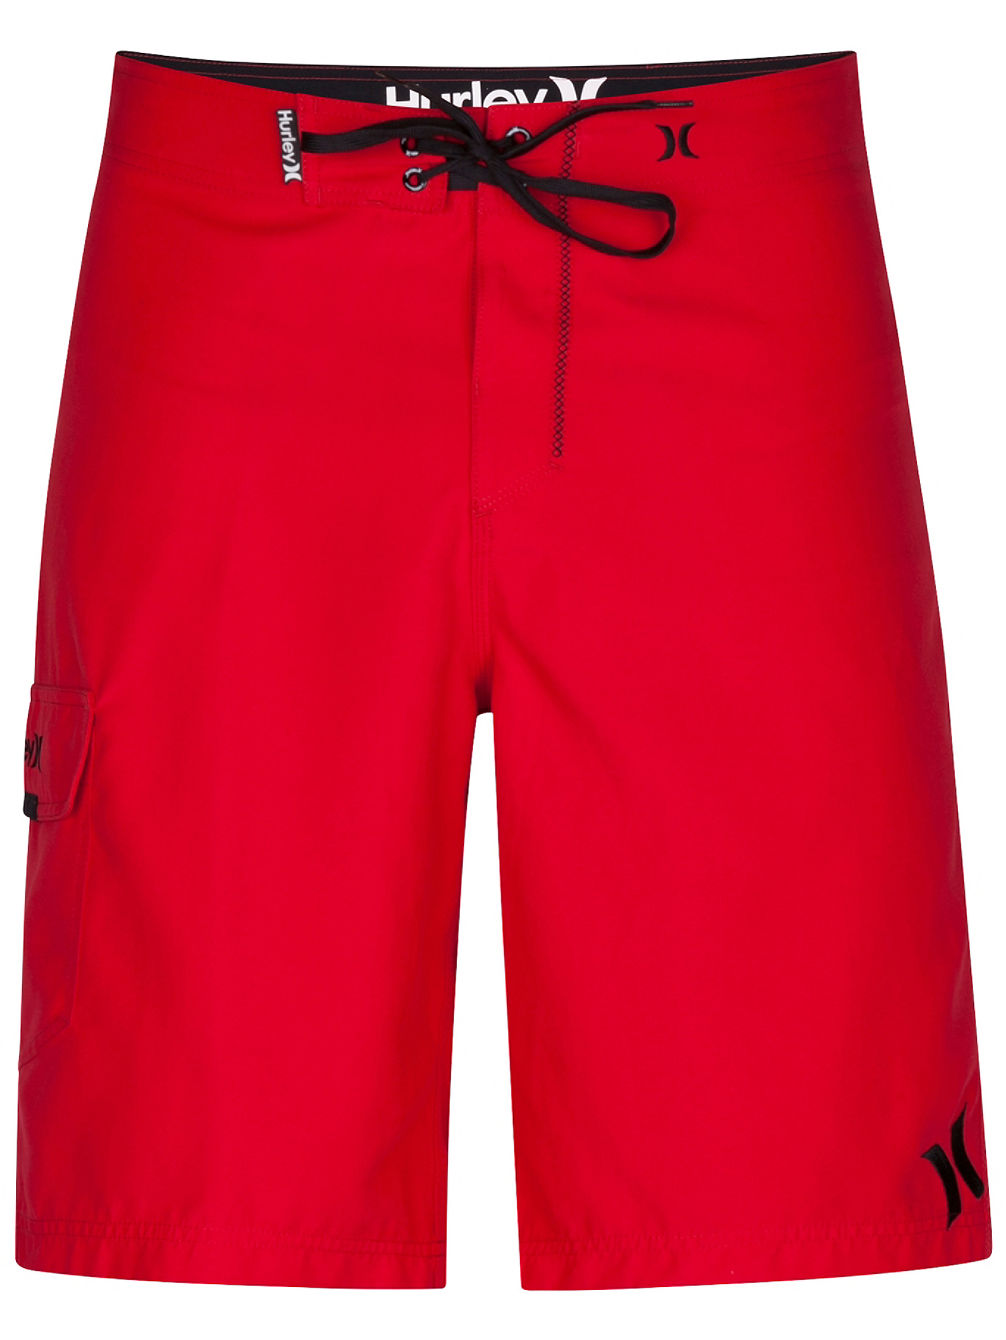 hurley-one-only-22-boardshorts